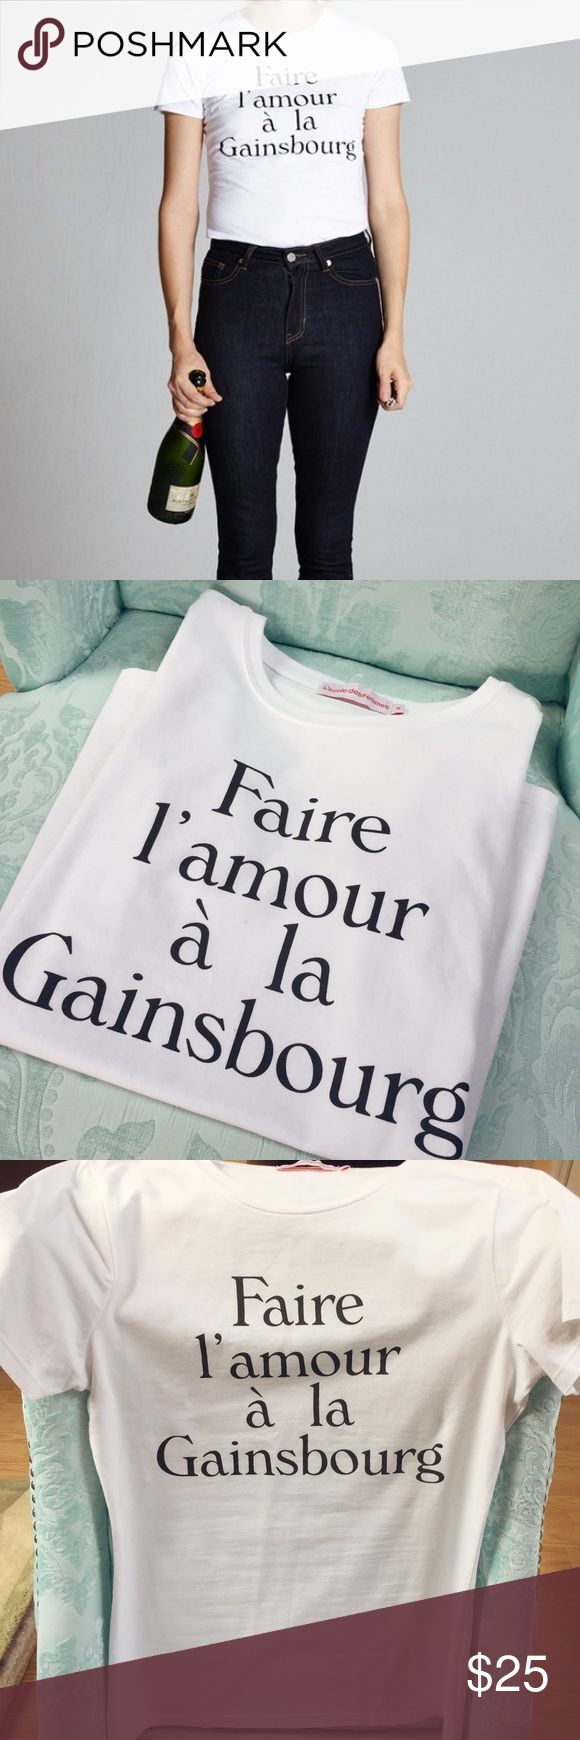 """Faire L'amour à la Gainsbourg White Tee Cheeky T-shirt from L'Ecole des Femmes...slogan means """"Make Love Like Gainsbourg"""". Never worn but missing tags. Size M, 95% cotton and 5% Lycra. I am typically an XS or S but sized up for a bit looser fit as this is intended to be fitted. Bundle 2 or more items to save 20%! L'Ecole des Femmes Tops Tees - Short Sleeve"""